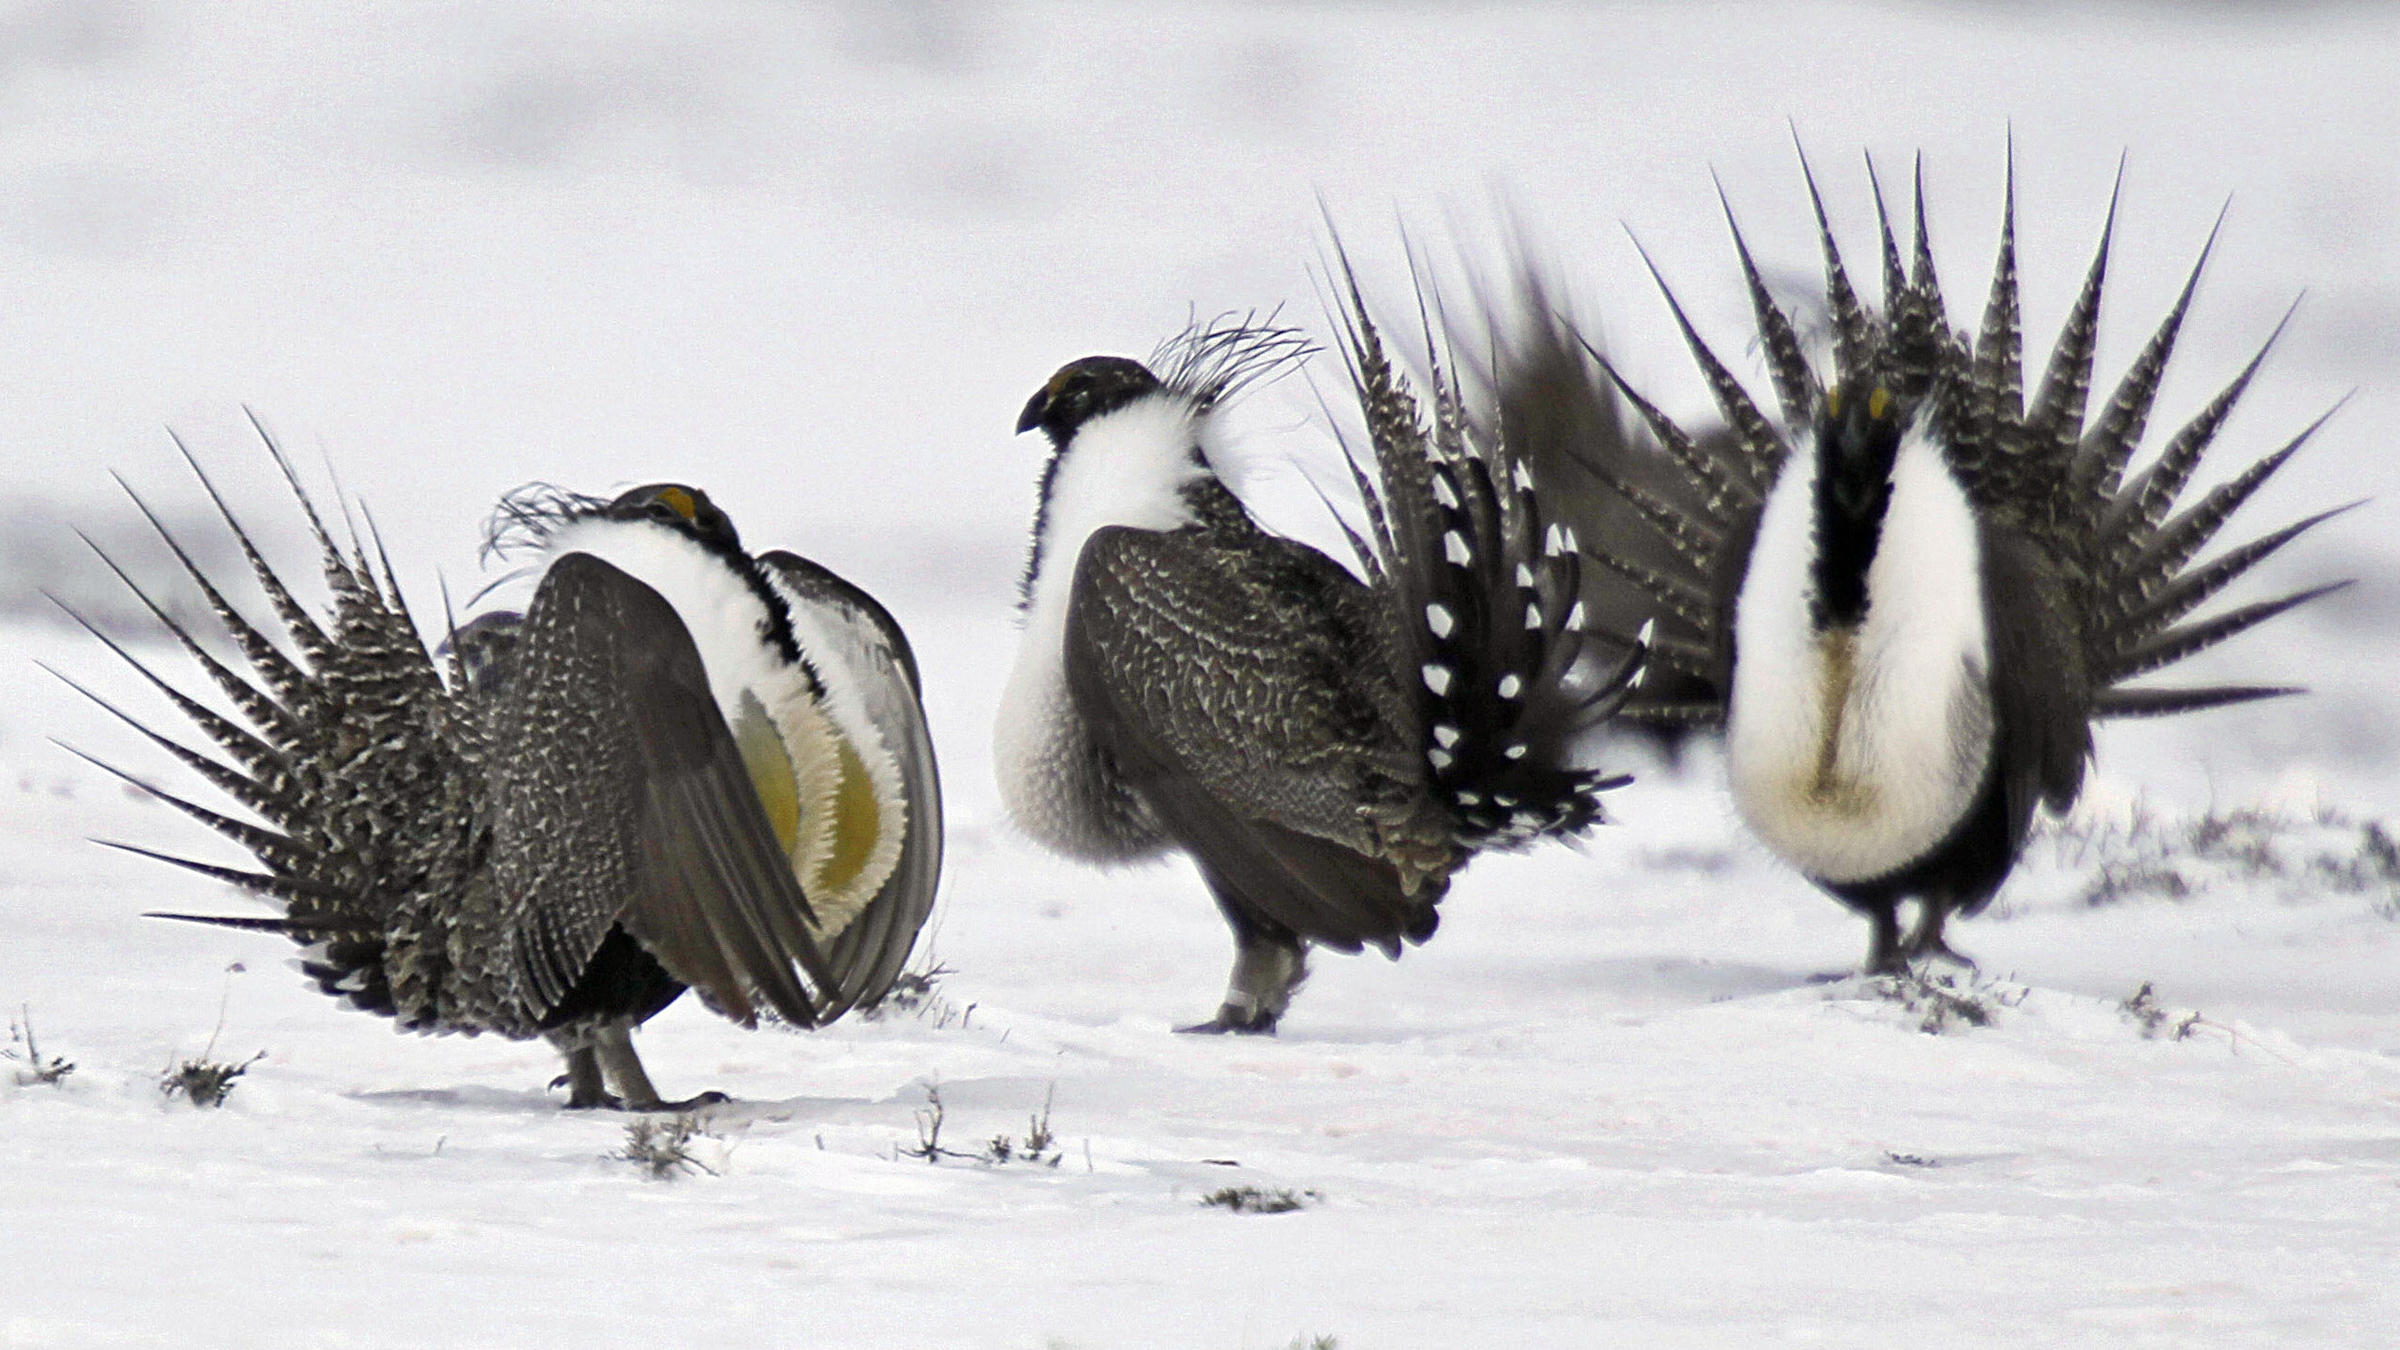 USA to relax rules protecting sage grouse, in win for oil drillers